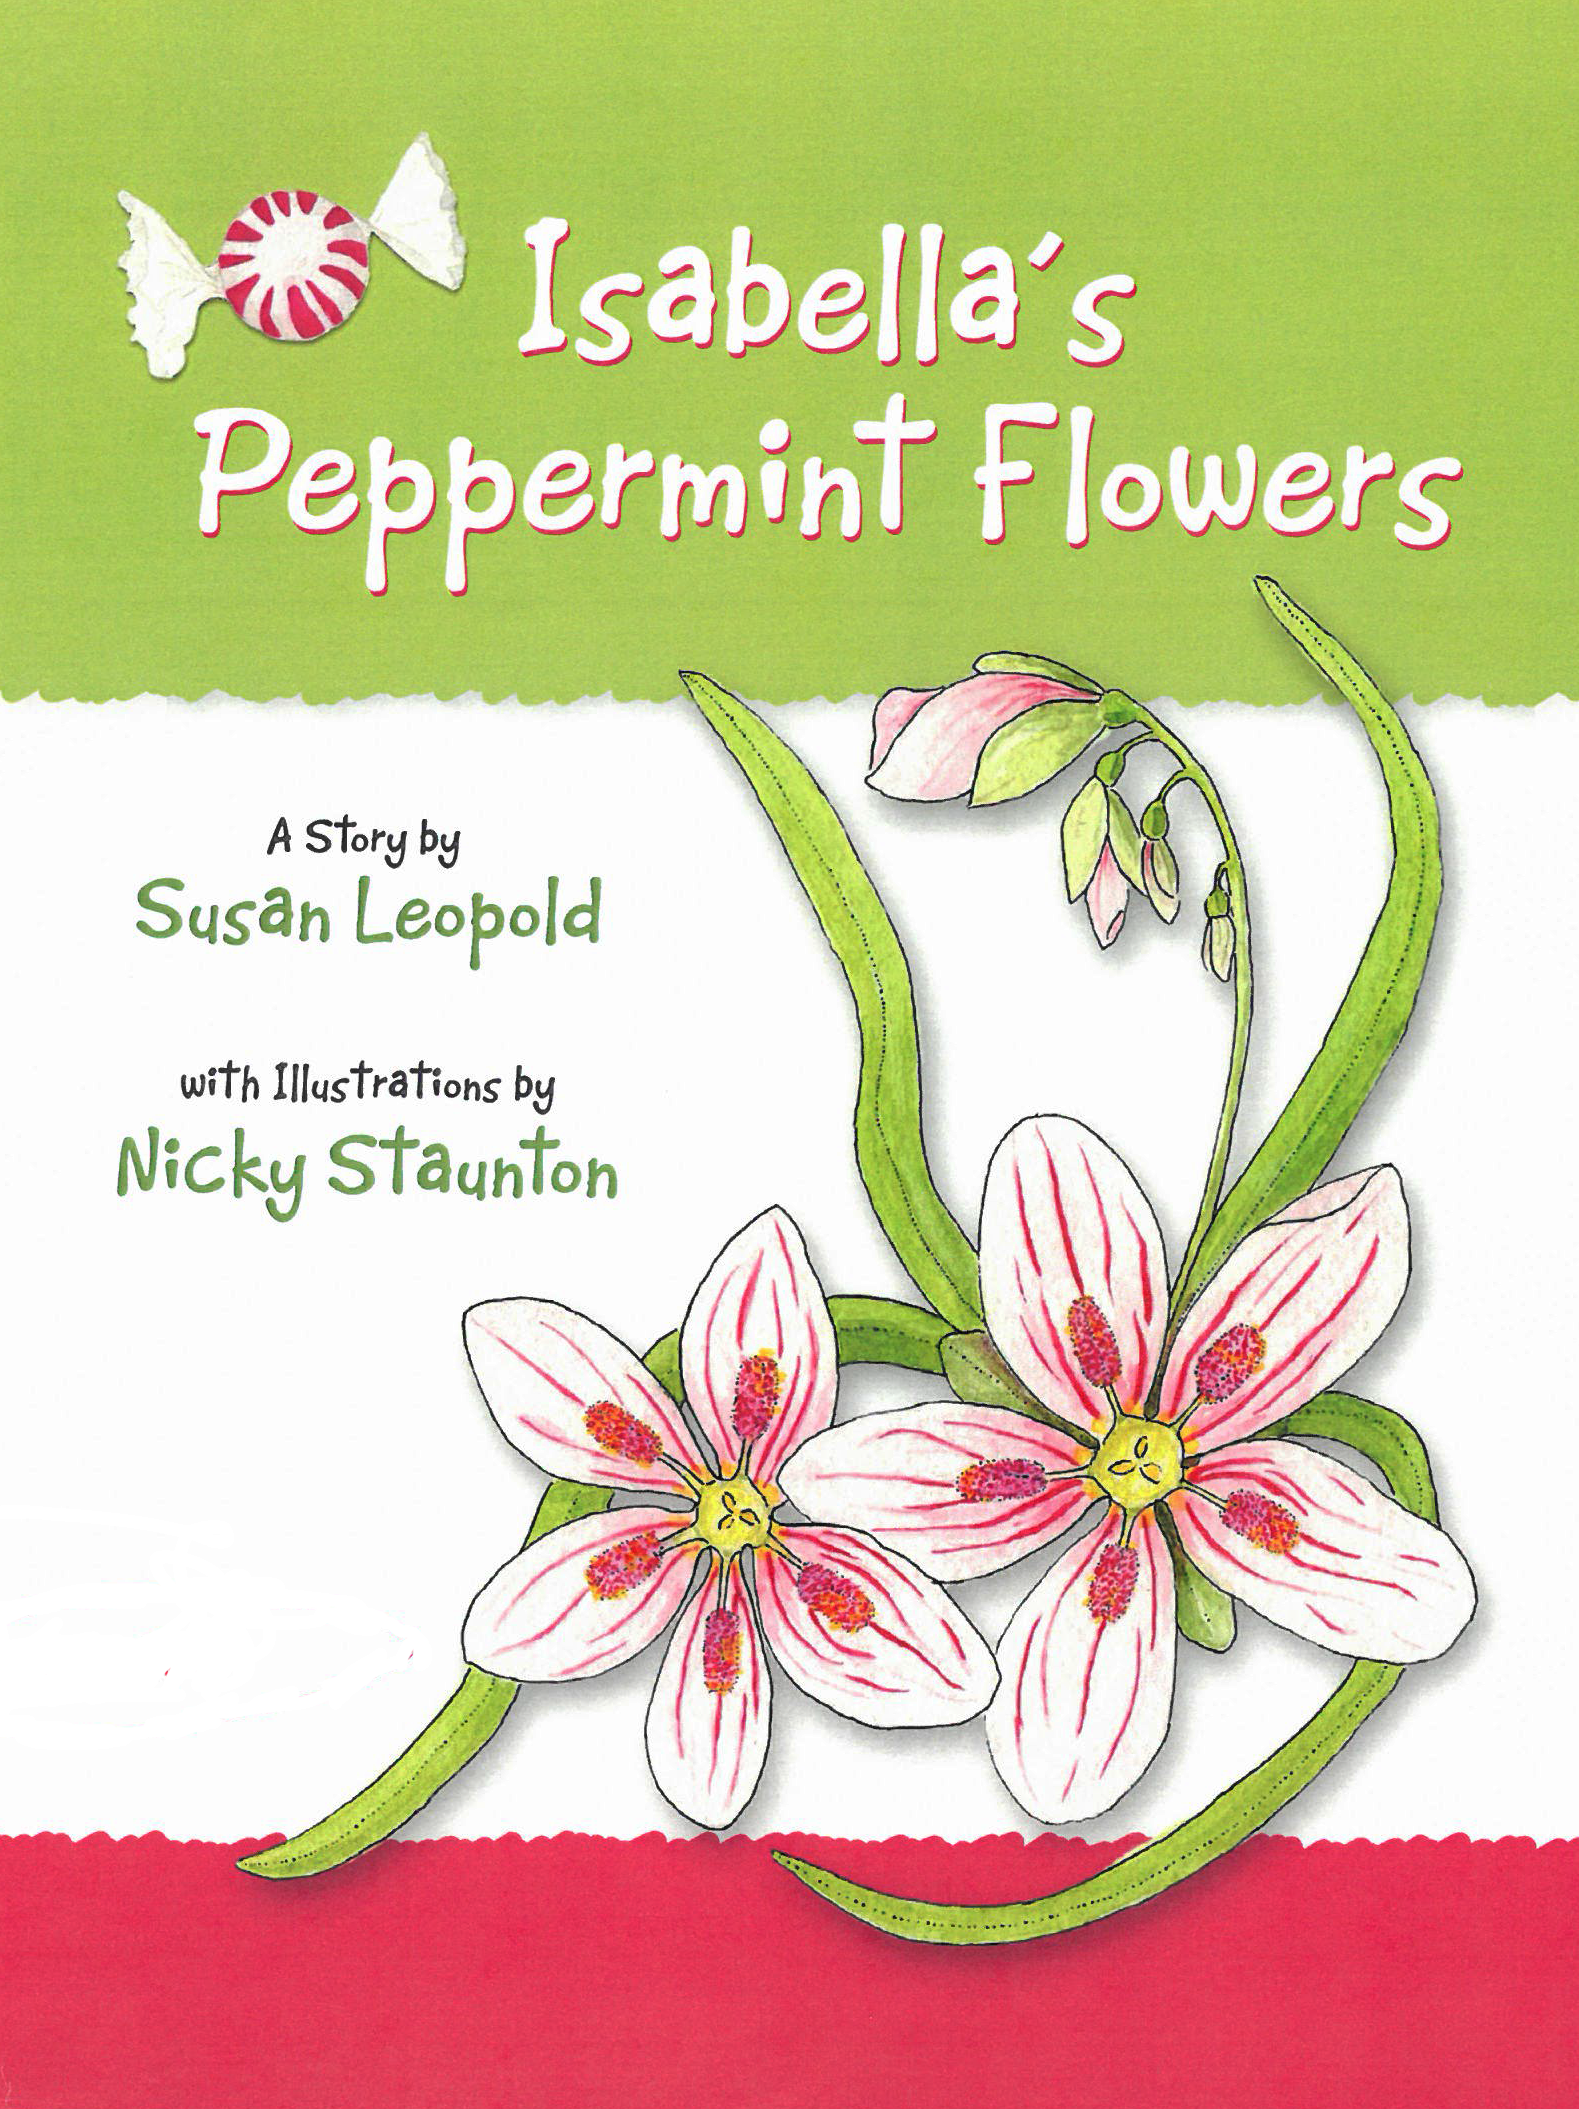 Isabella's Peppermint Flowers book